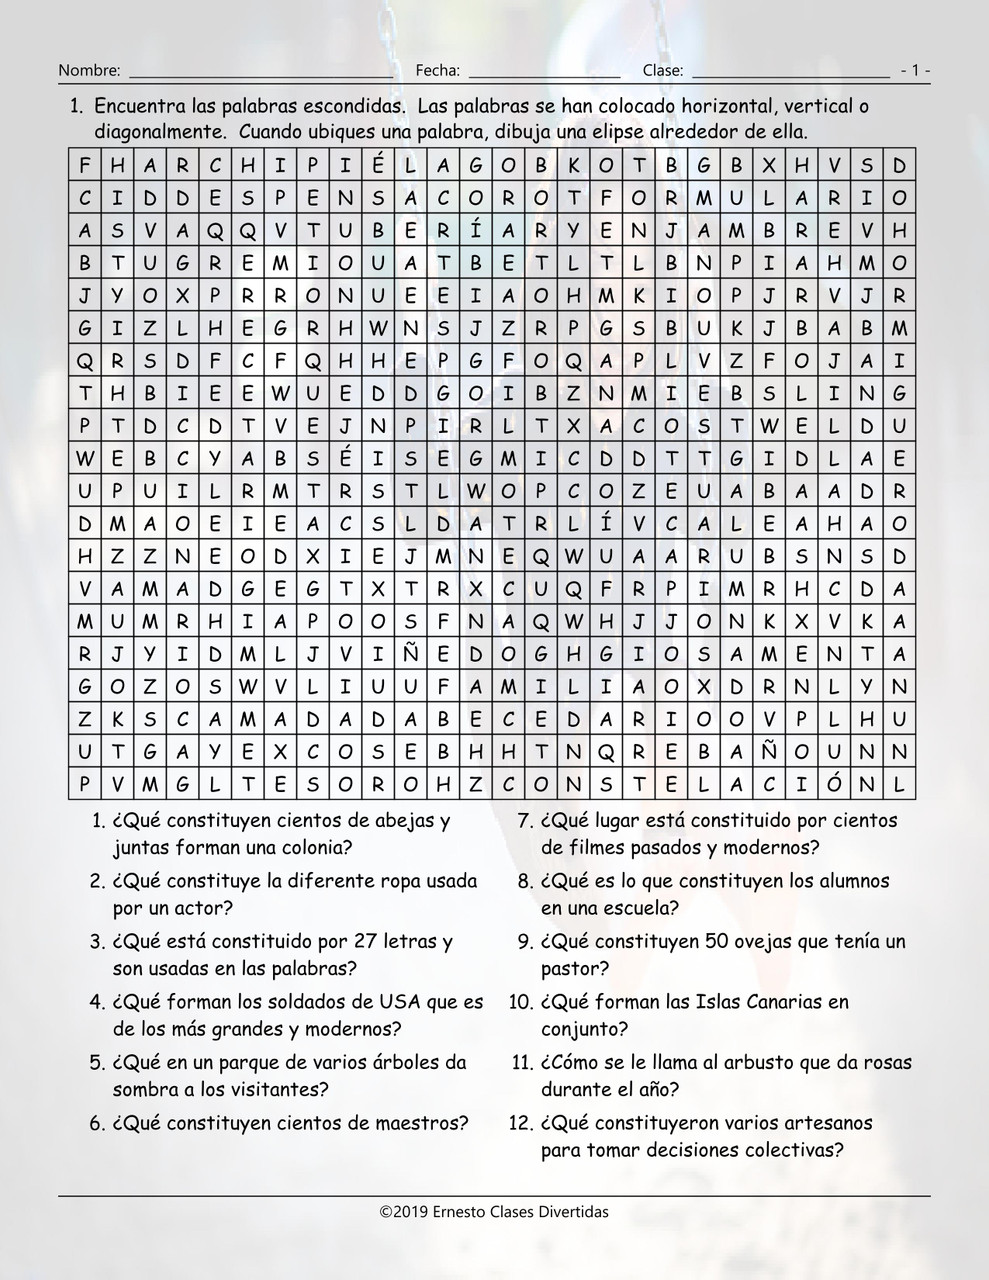 medium resolution of Collective Nouns Spanish Word Search Worksheet - Amped Up Learning